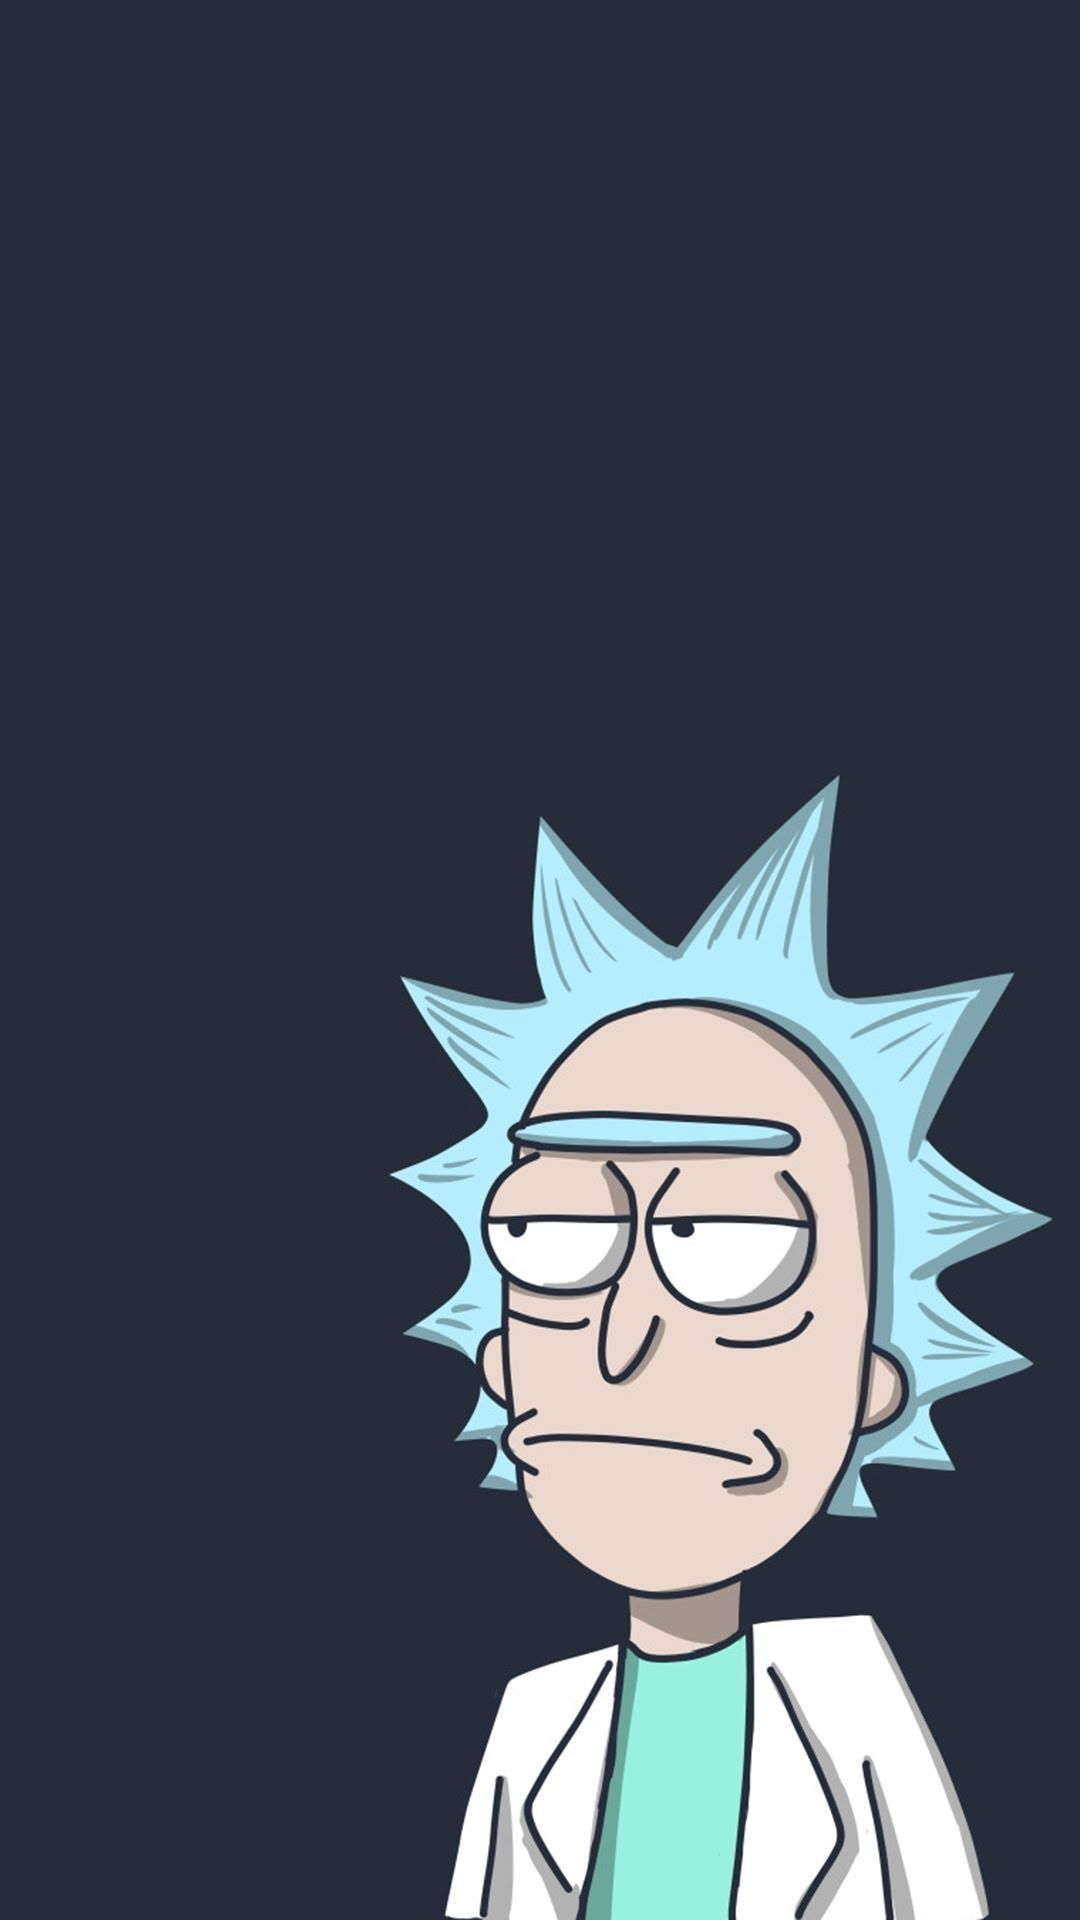 Rick And Morty Iphone Wallpapers Top Free Rick And Morty With The Most Incredibl In 2020 Iphone Wallpaper Rick And Morty Rick And Morty Image Rick And Morty Poster